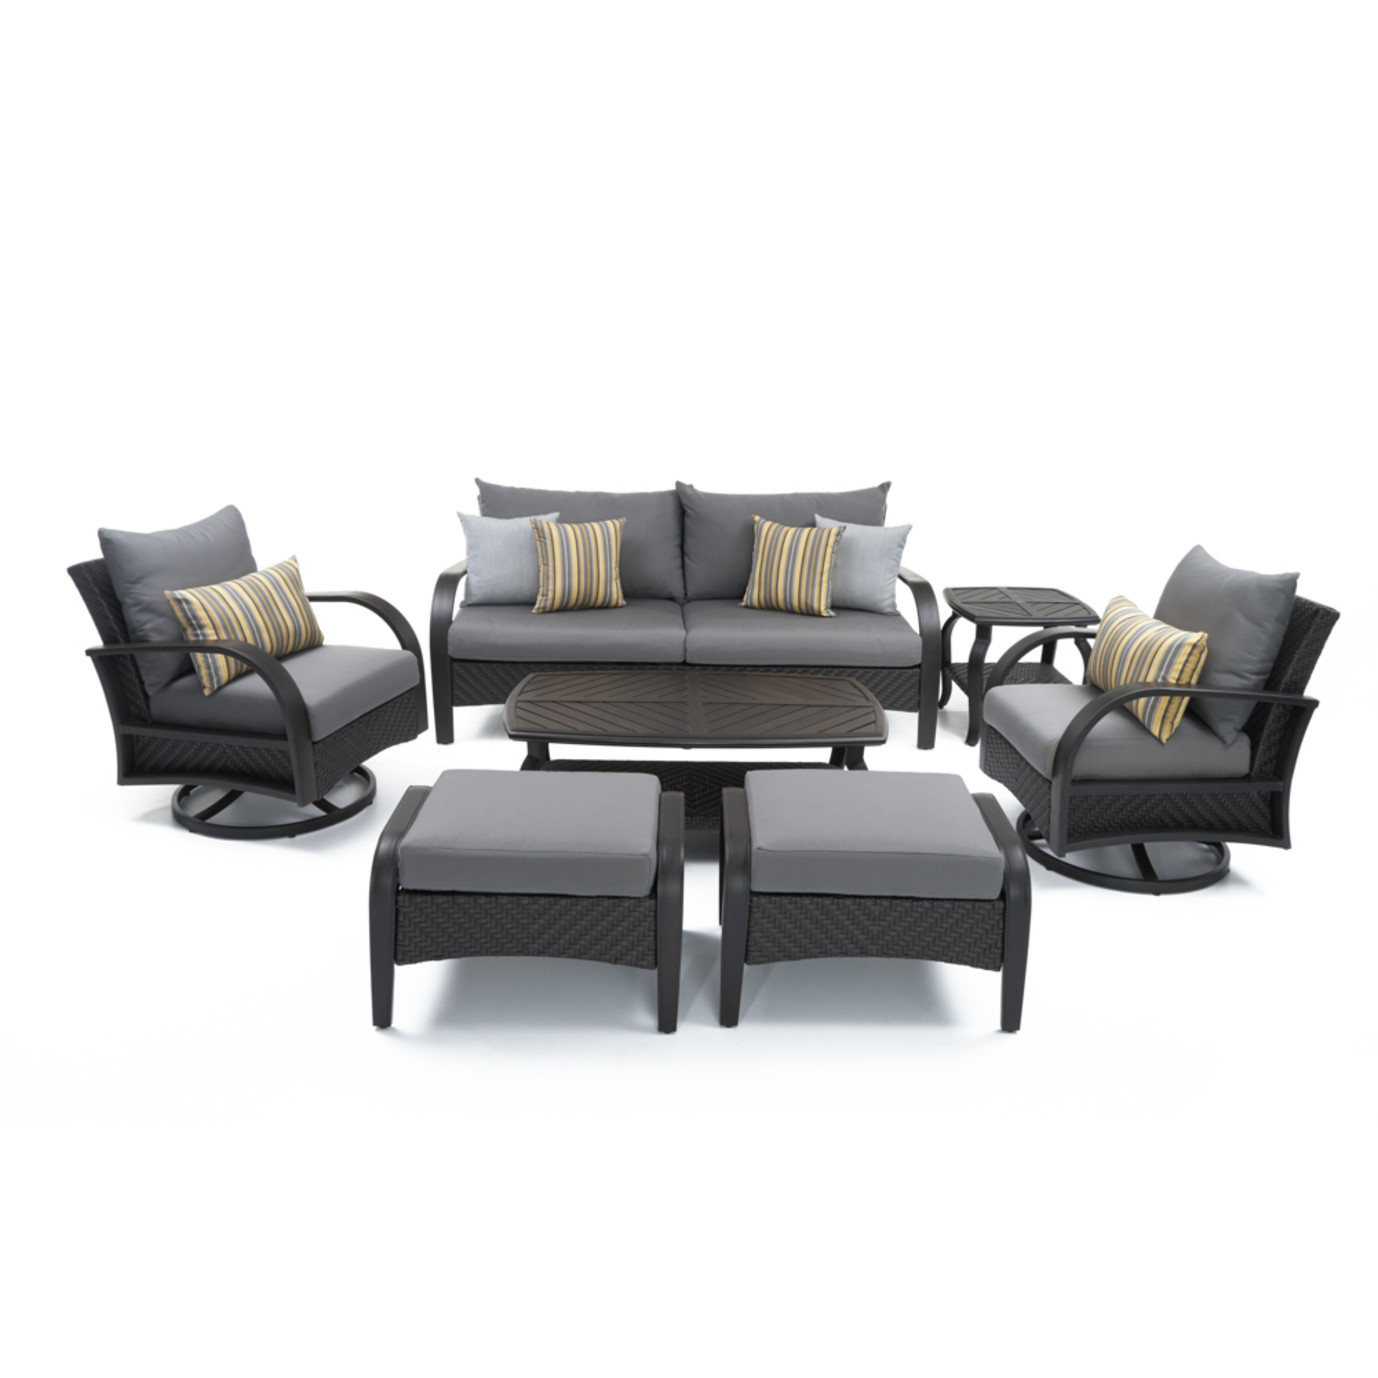 Barcelo™ 7pc Motion Club Deep Seating Set - Charcoal Grey